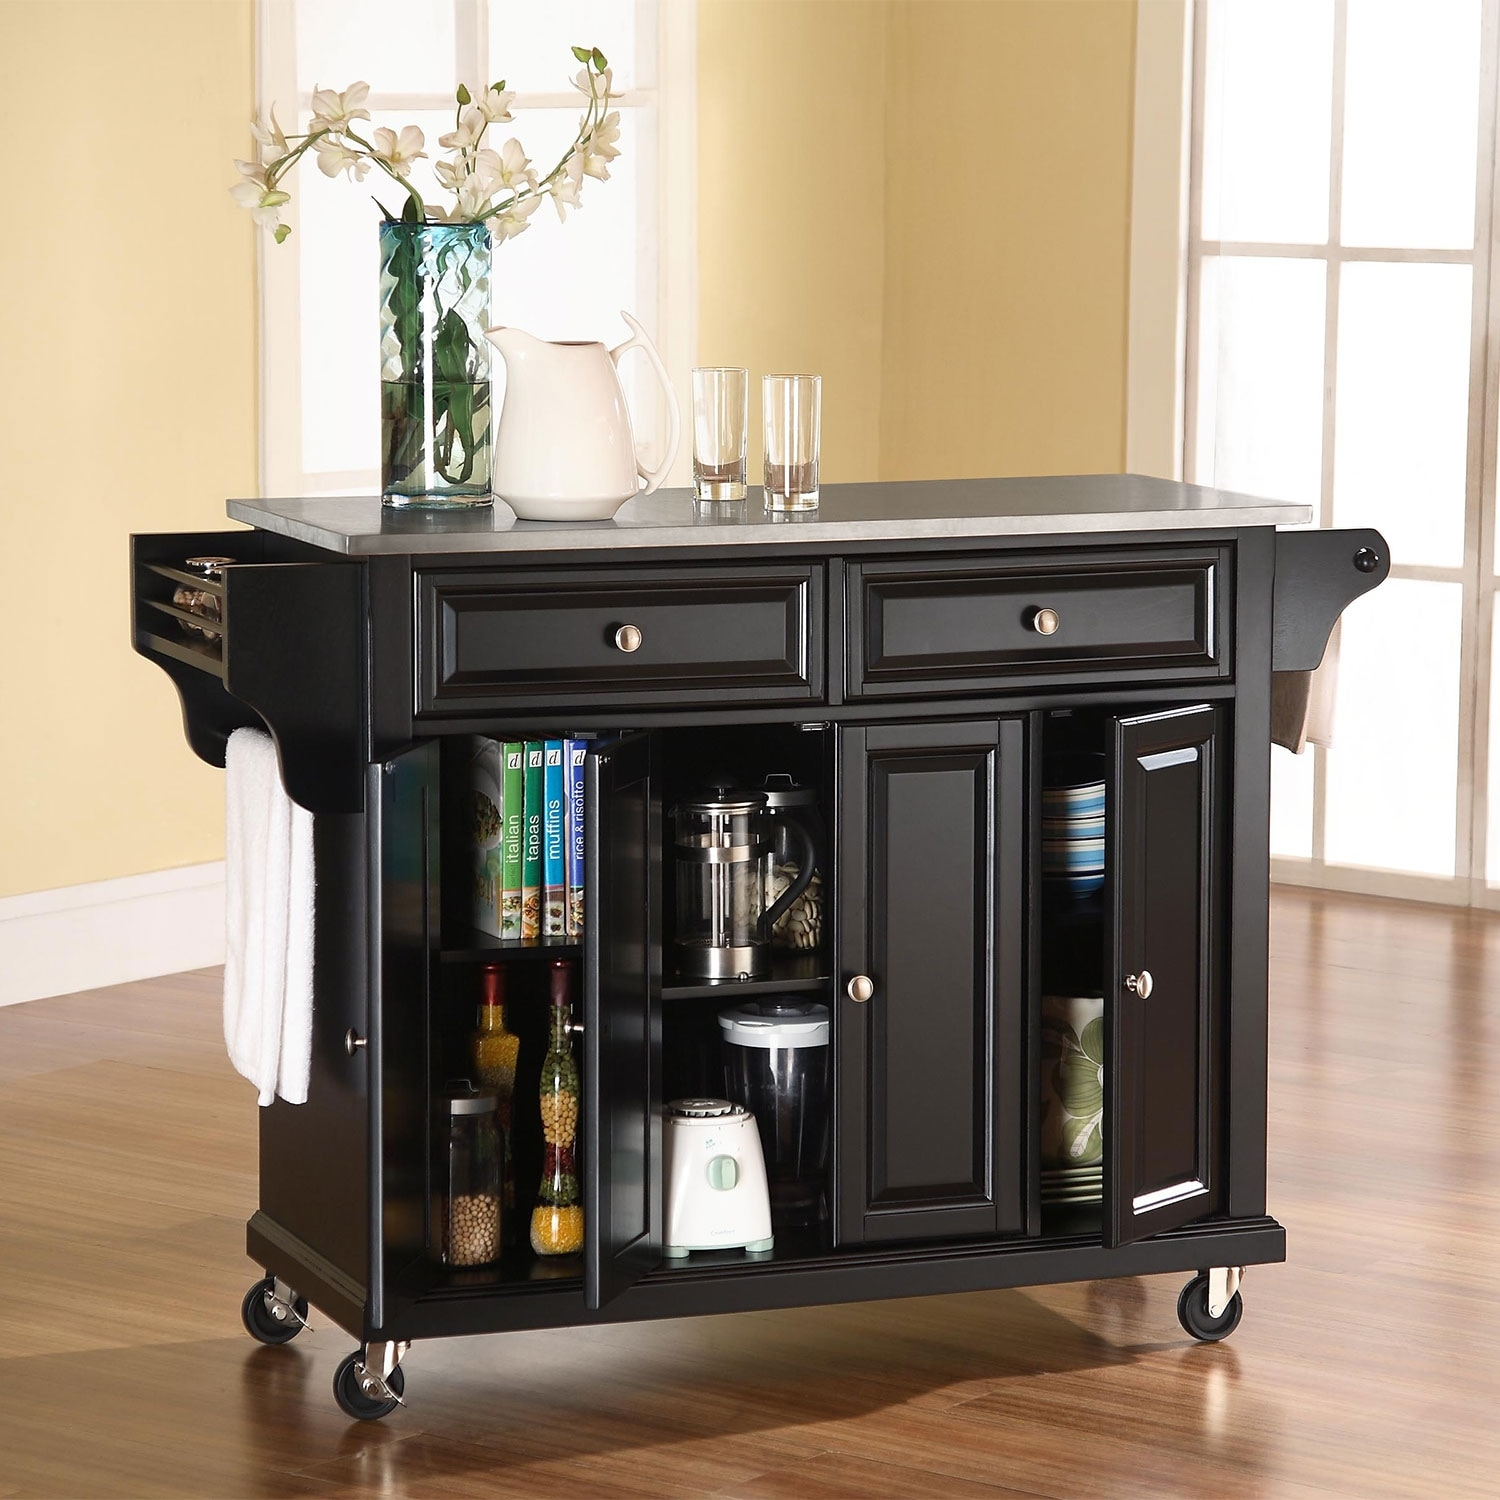 Crosley Furniture Kitchen Cart Crosley Kitchen Island Canada Best Kitchen Island 2017